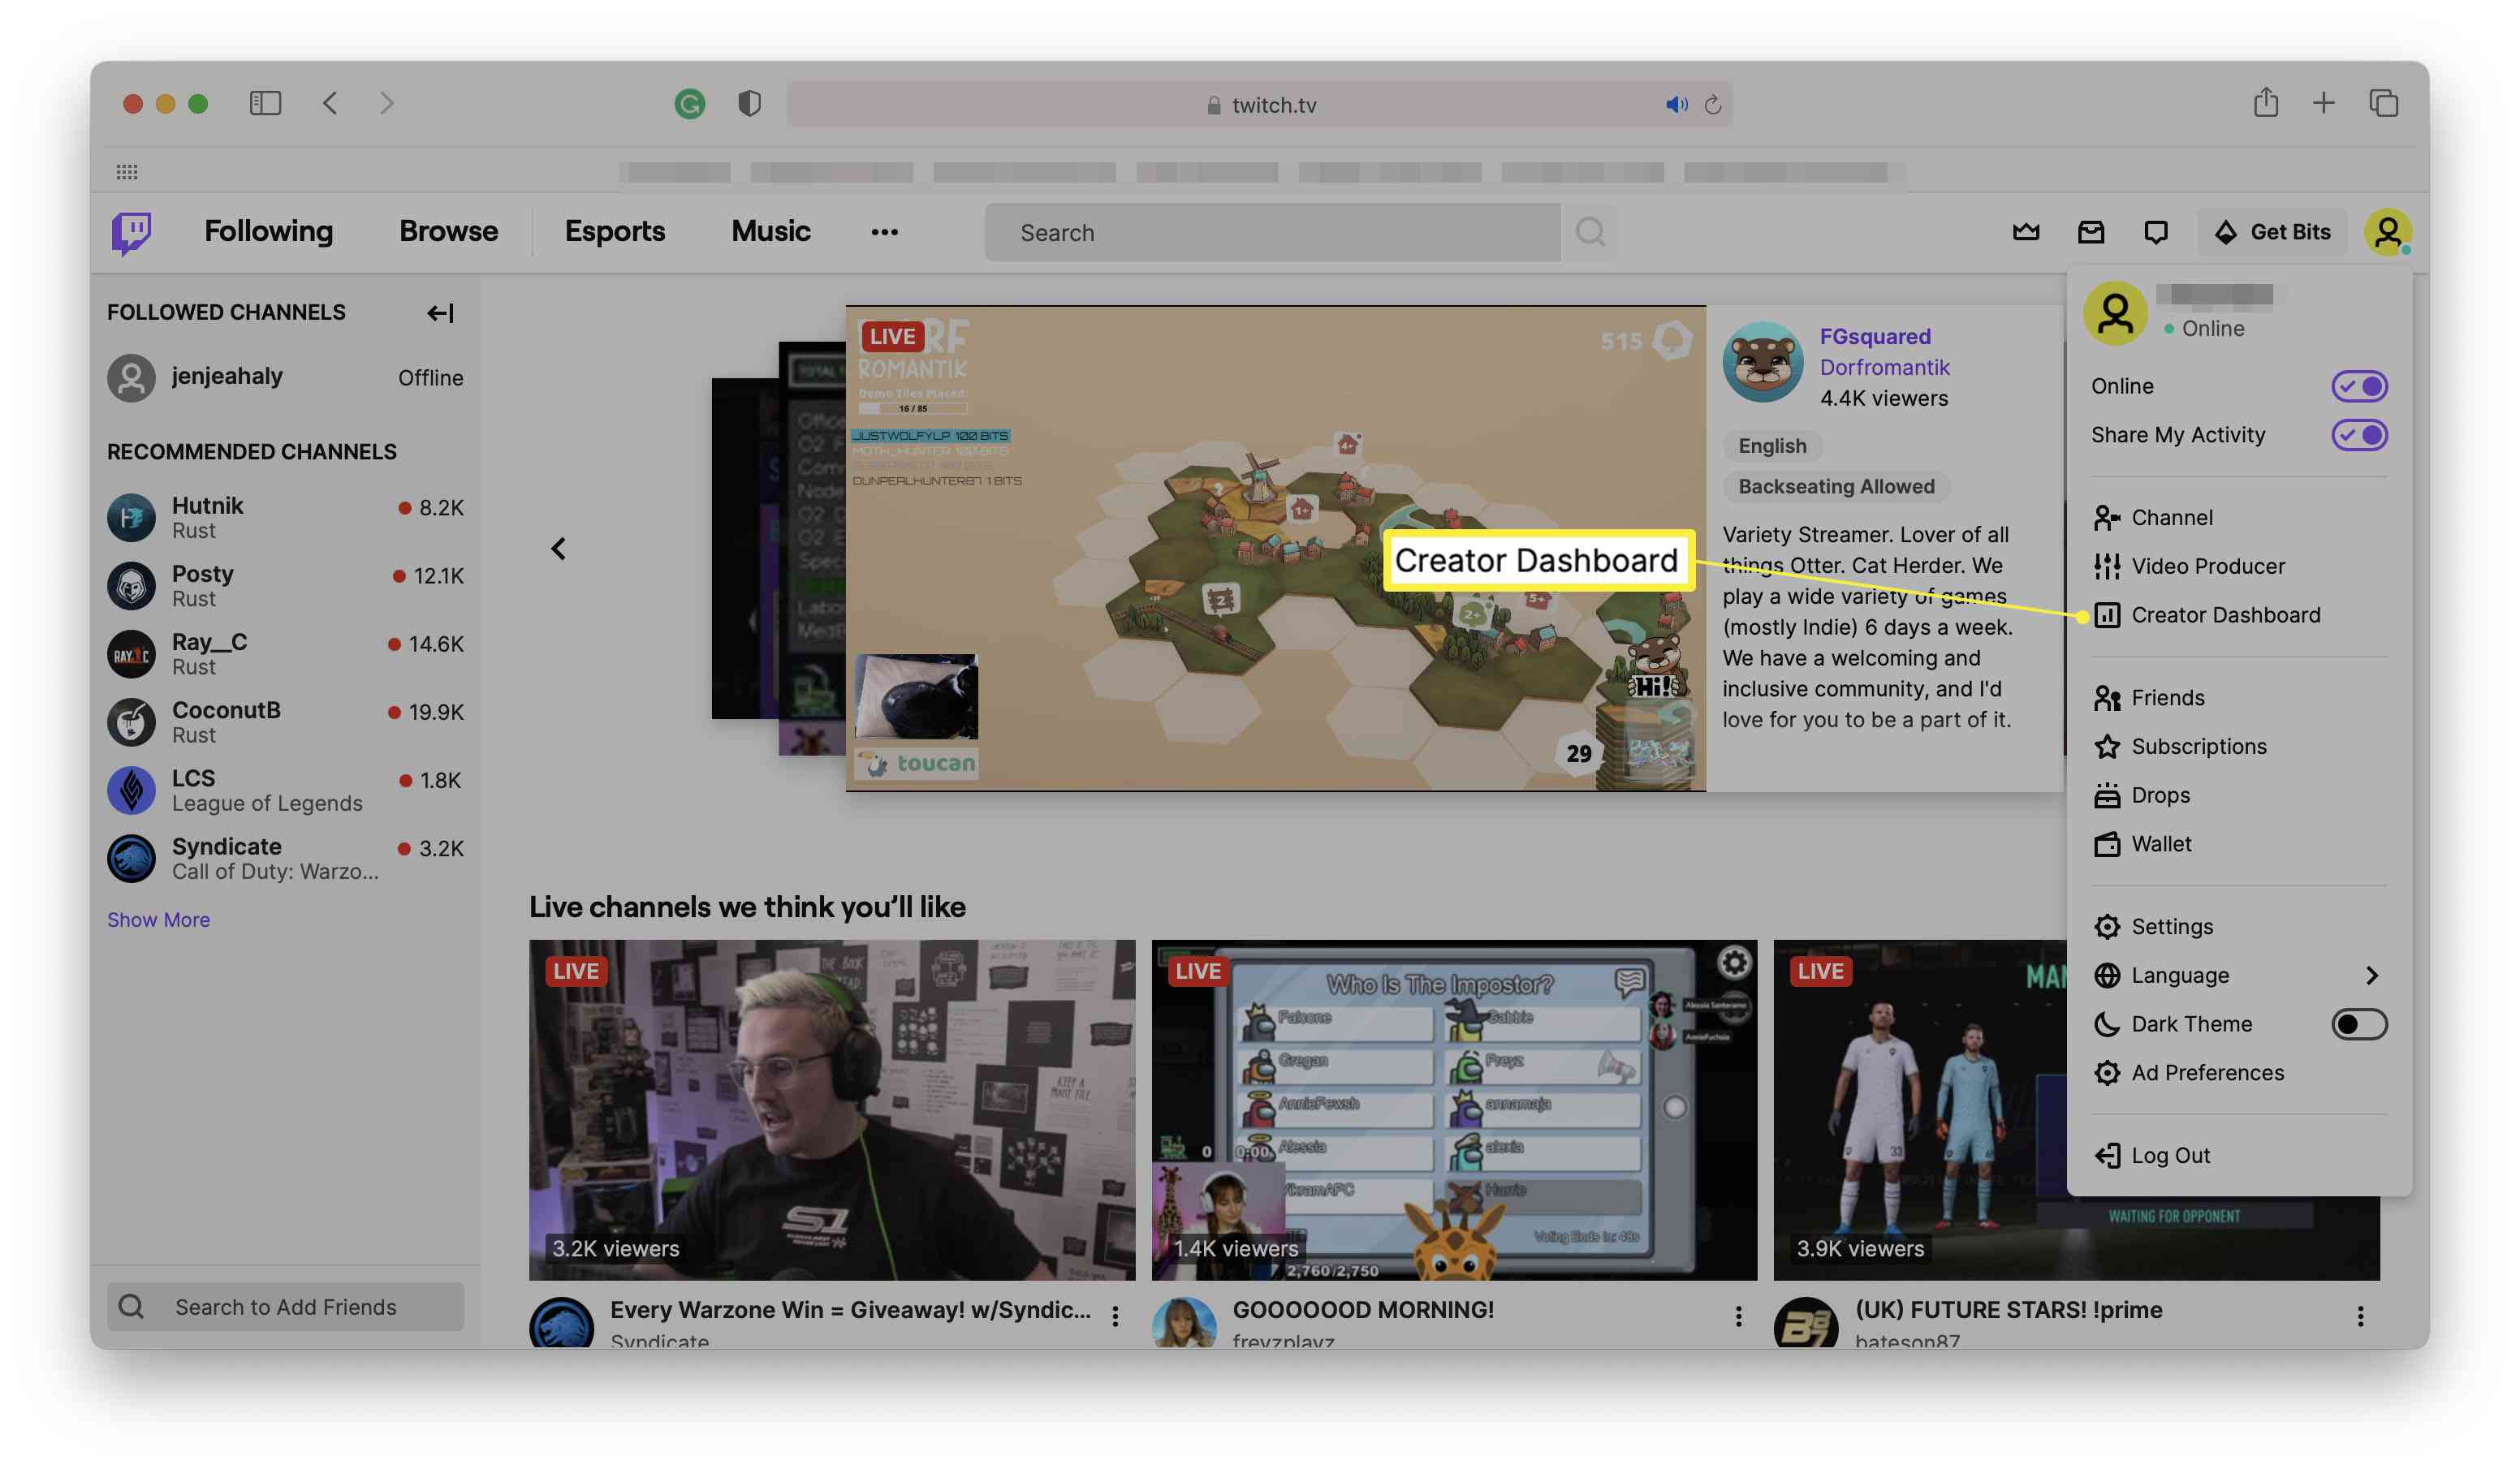 Twitch home page with profile options open